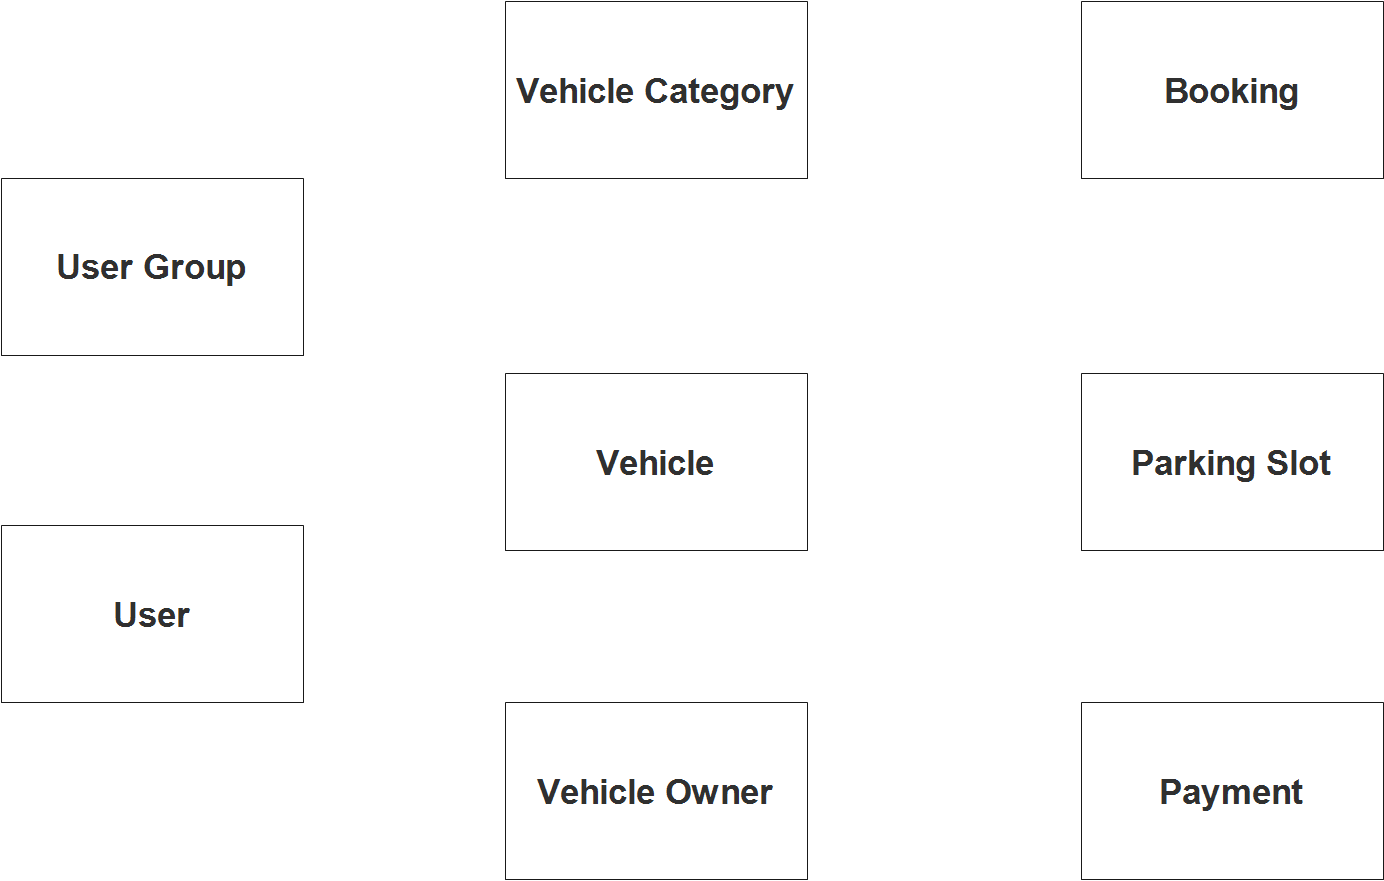 Vehicle Parking Management System ER Diagram - Step 1 Identify Entities